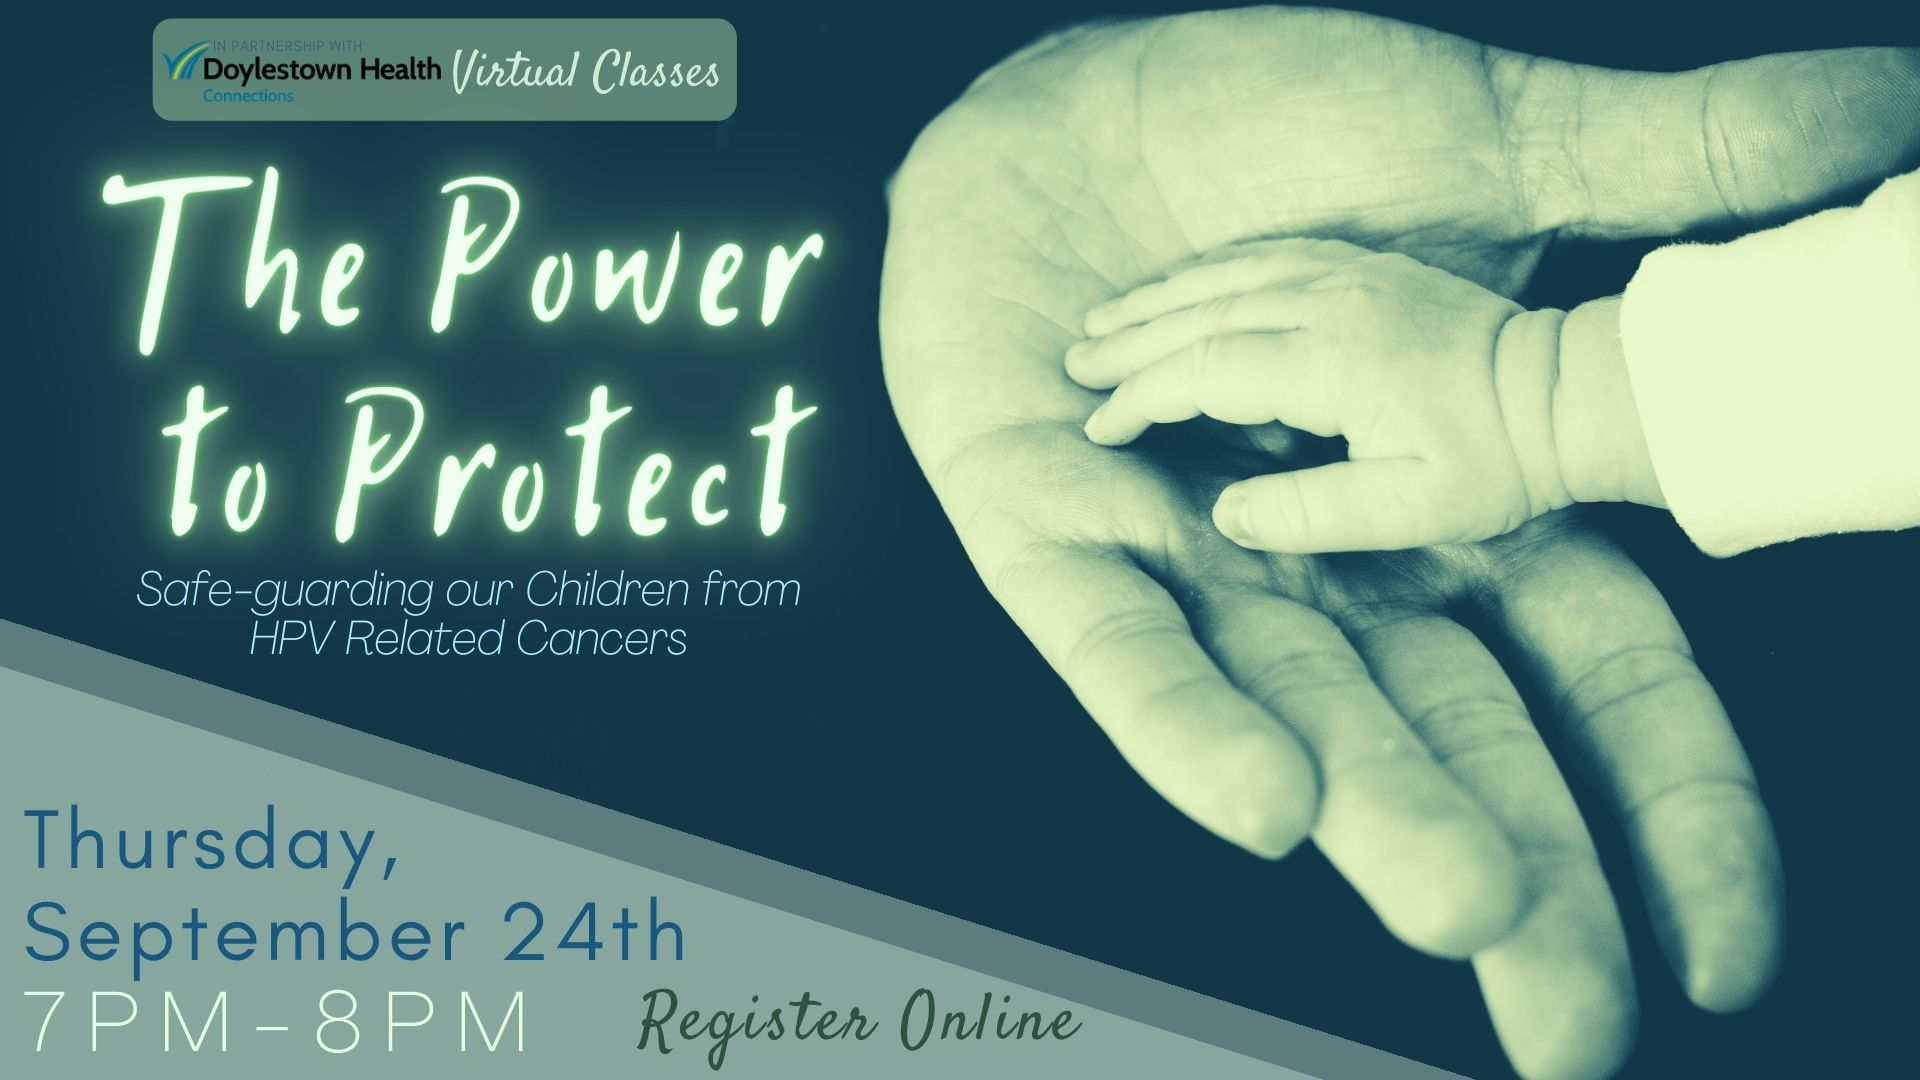 The Power to Protect: Safe-guarding our Children from HPV Related Cancers